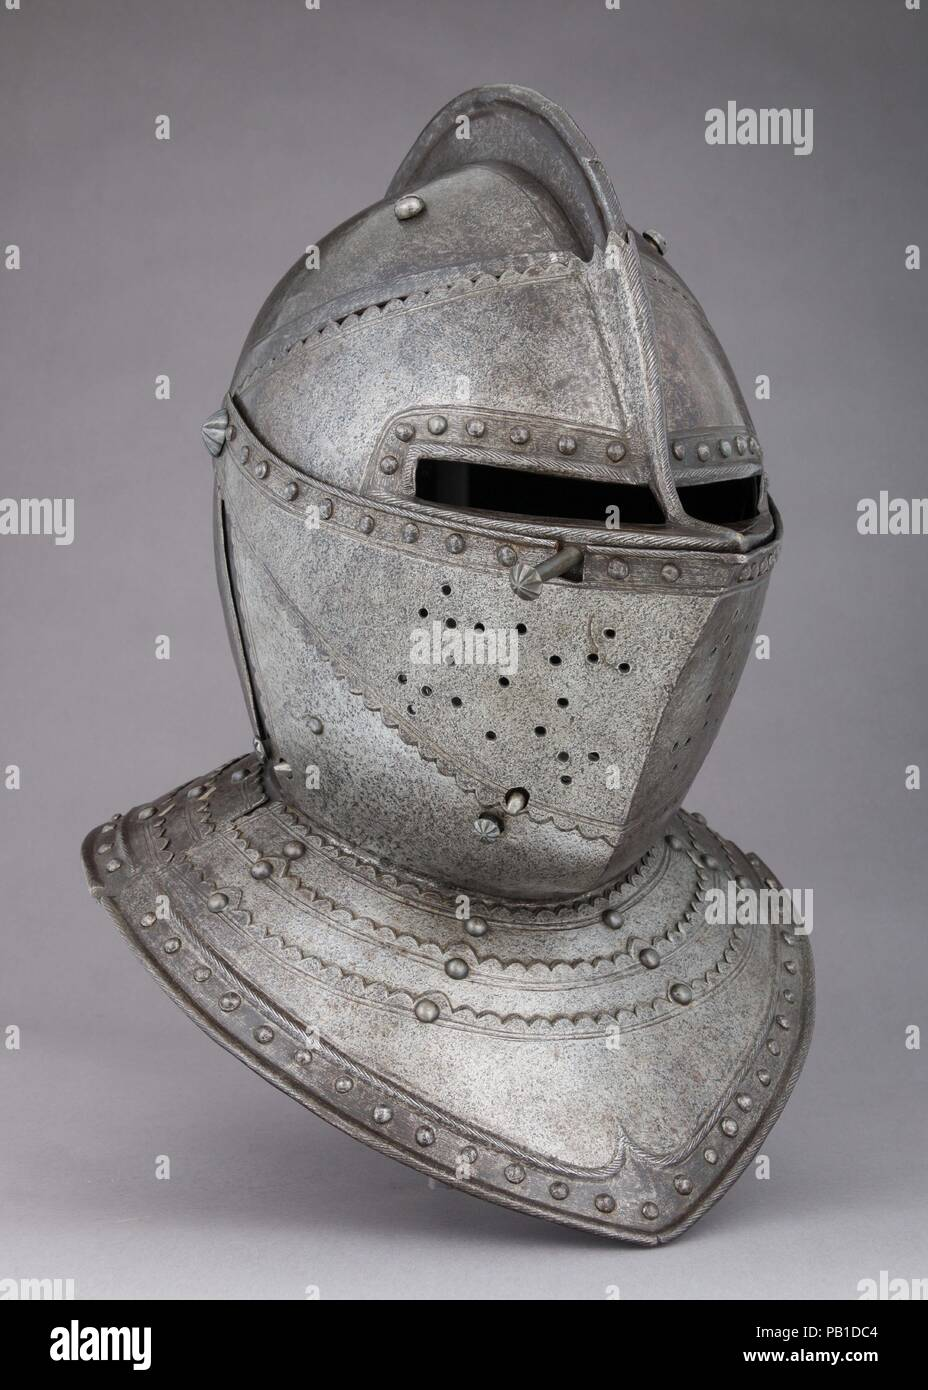 Close-Helmet for the Field. Culture: French. Dimensions: H. 15 3/4 in. (40 cm); W. 11 3/8 in. (28.9 cm); D. 14 5/8 in. (37.1 cm); Wt. 13 lb. 14 oz. (6293 g). Date: ca. 1620-30.  The two-piece construction of the helmet bowl, the scalloped edges of the plates, and the distinctive snub-nosed profile of the visor recall French helmets of about 1620-30. The reinforcing shot-proof plates screwed to either side of the bowl, which add 3 pounds 10 ounces (1675 g) to the overall weight, are rare on close-hlemets for cuirassiers. Beneath the reinforces, the original smooth blue-black surface of the bowl Stock Photo